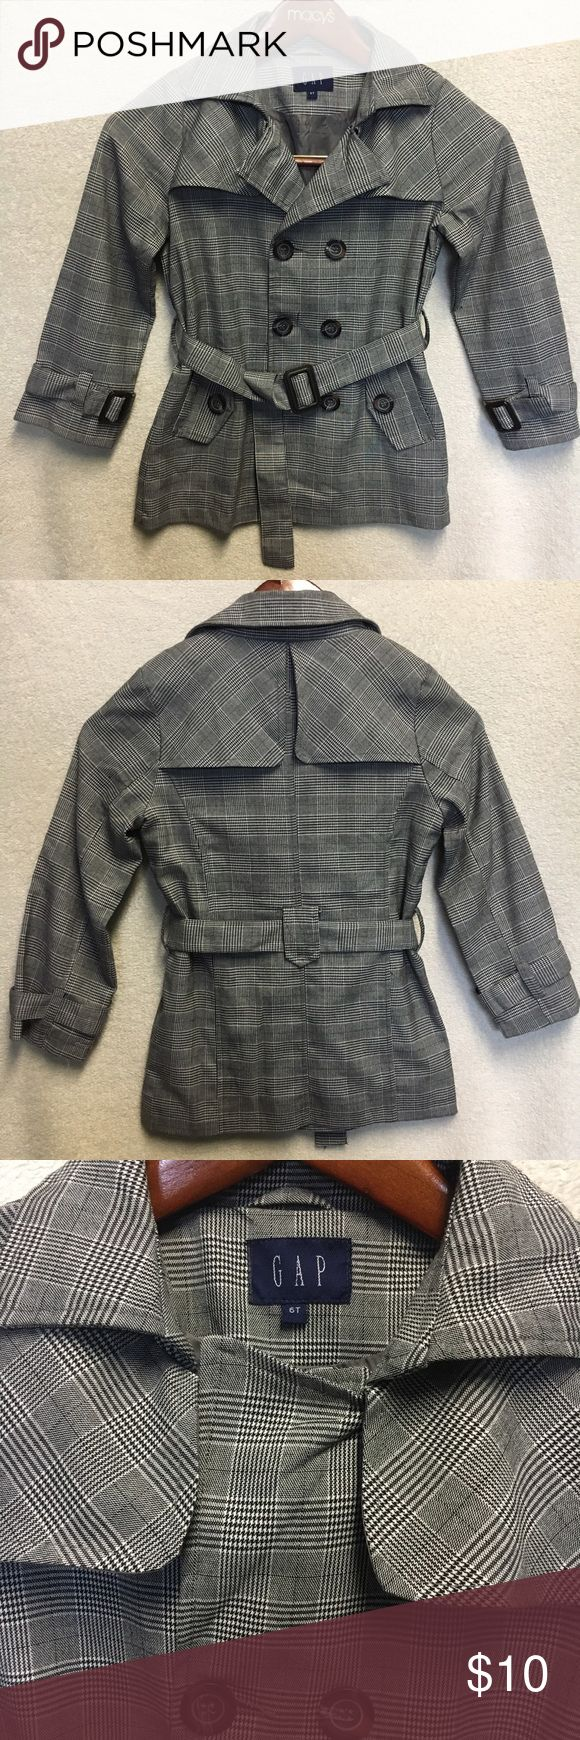 Gap Coat Blazer for kids Gap gray coat blazer for kids size 6T very good condition. Price is firm unless its a bundle. ❤️Bundle 2 items and get a 10% discount. ❤️Bundle 3 or more items and get a 10% discounts plus a FREE jewelry set (necklace + earrings) of your choice!❤️ GAP Jackets & Coats